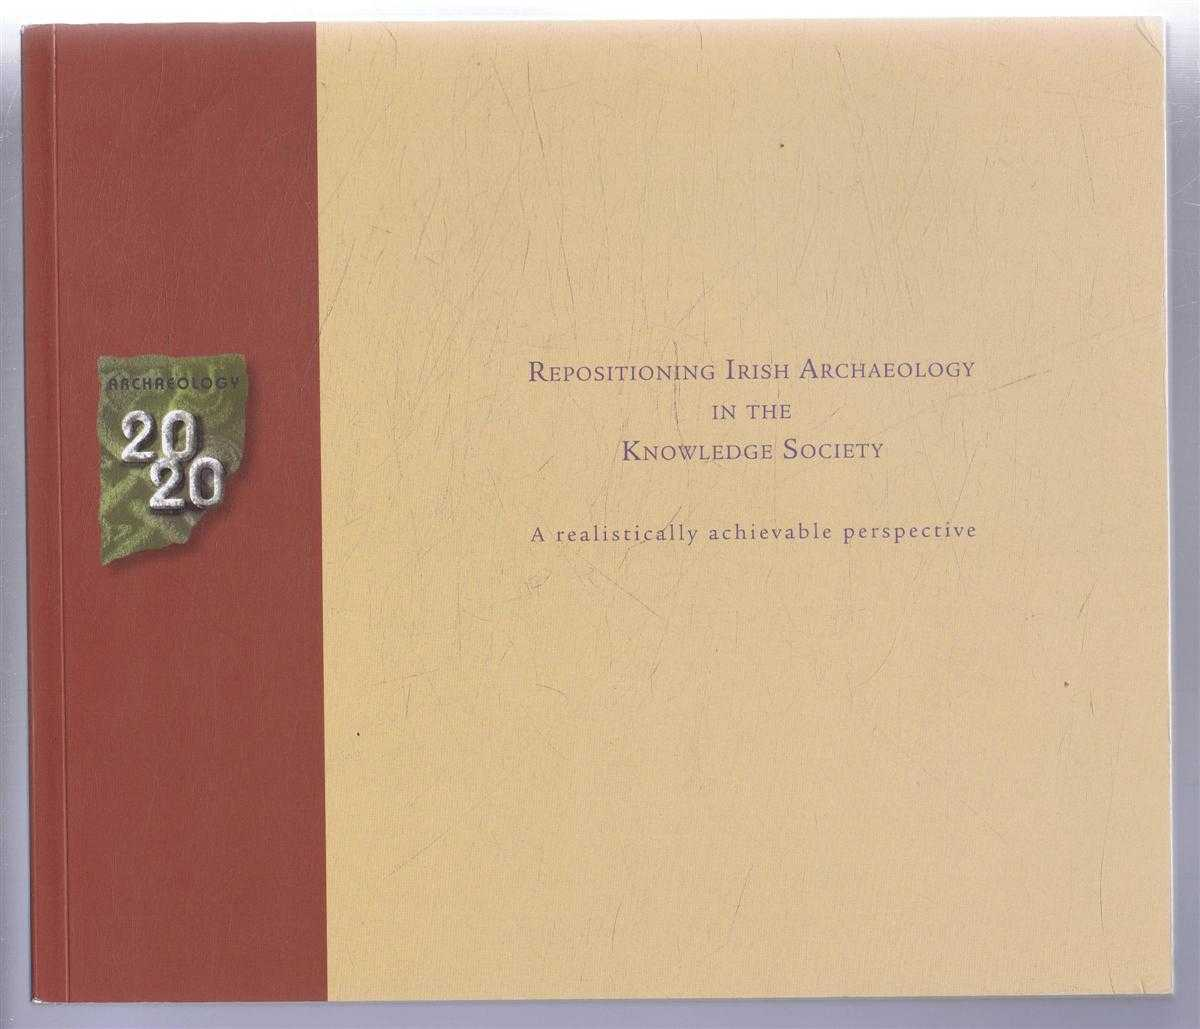 Archaeology 2020 Repositioning Irish Archaeology in the Knowledge Society, A realistically achievable perspective, edited by Roberta Reeners